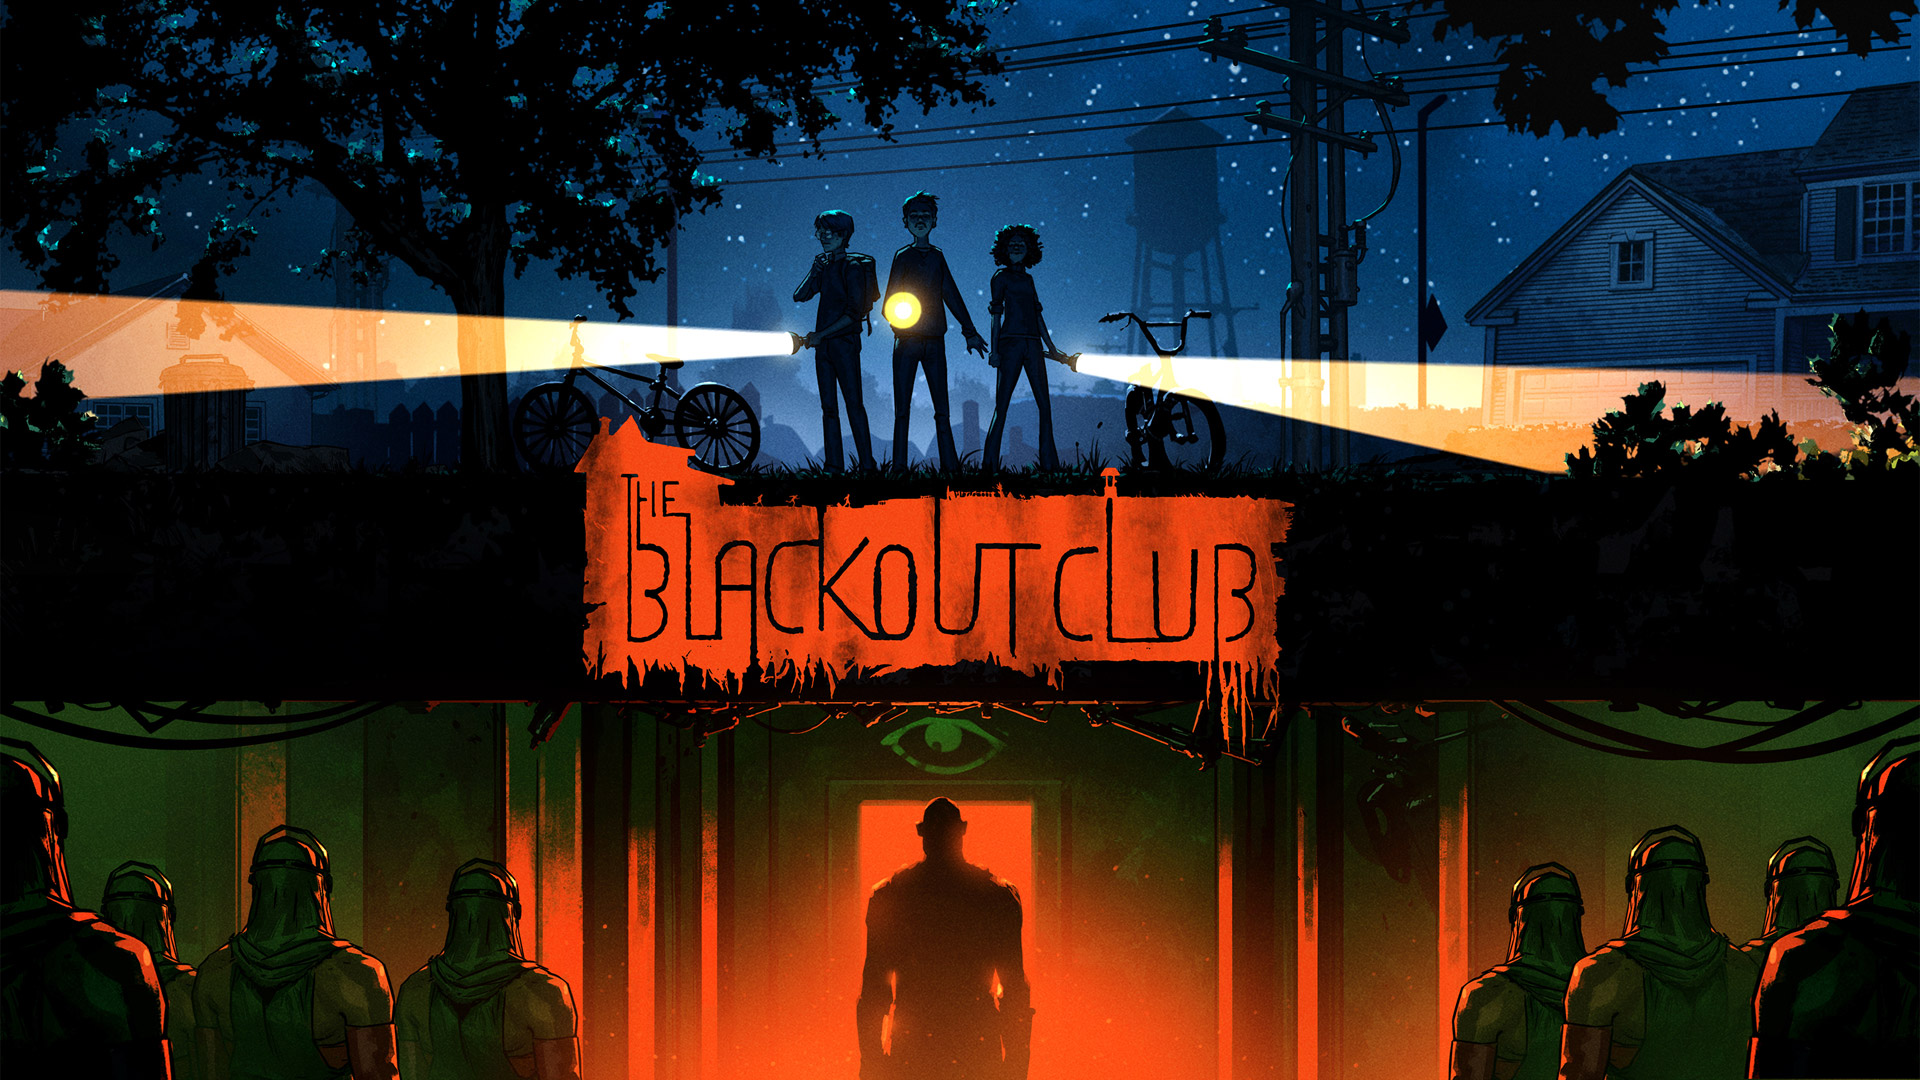 Free The Blackout Club Wallpaper in 1920x1080